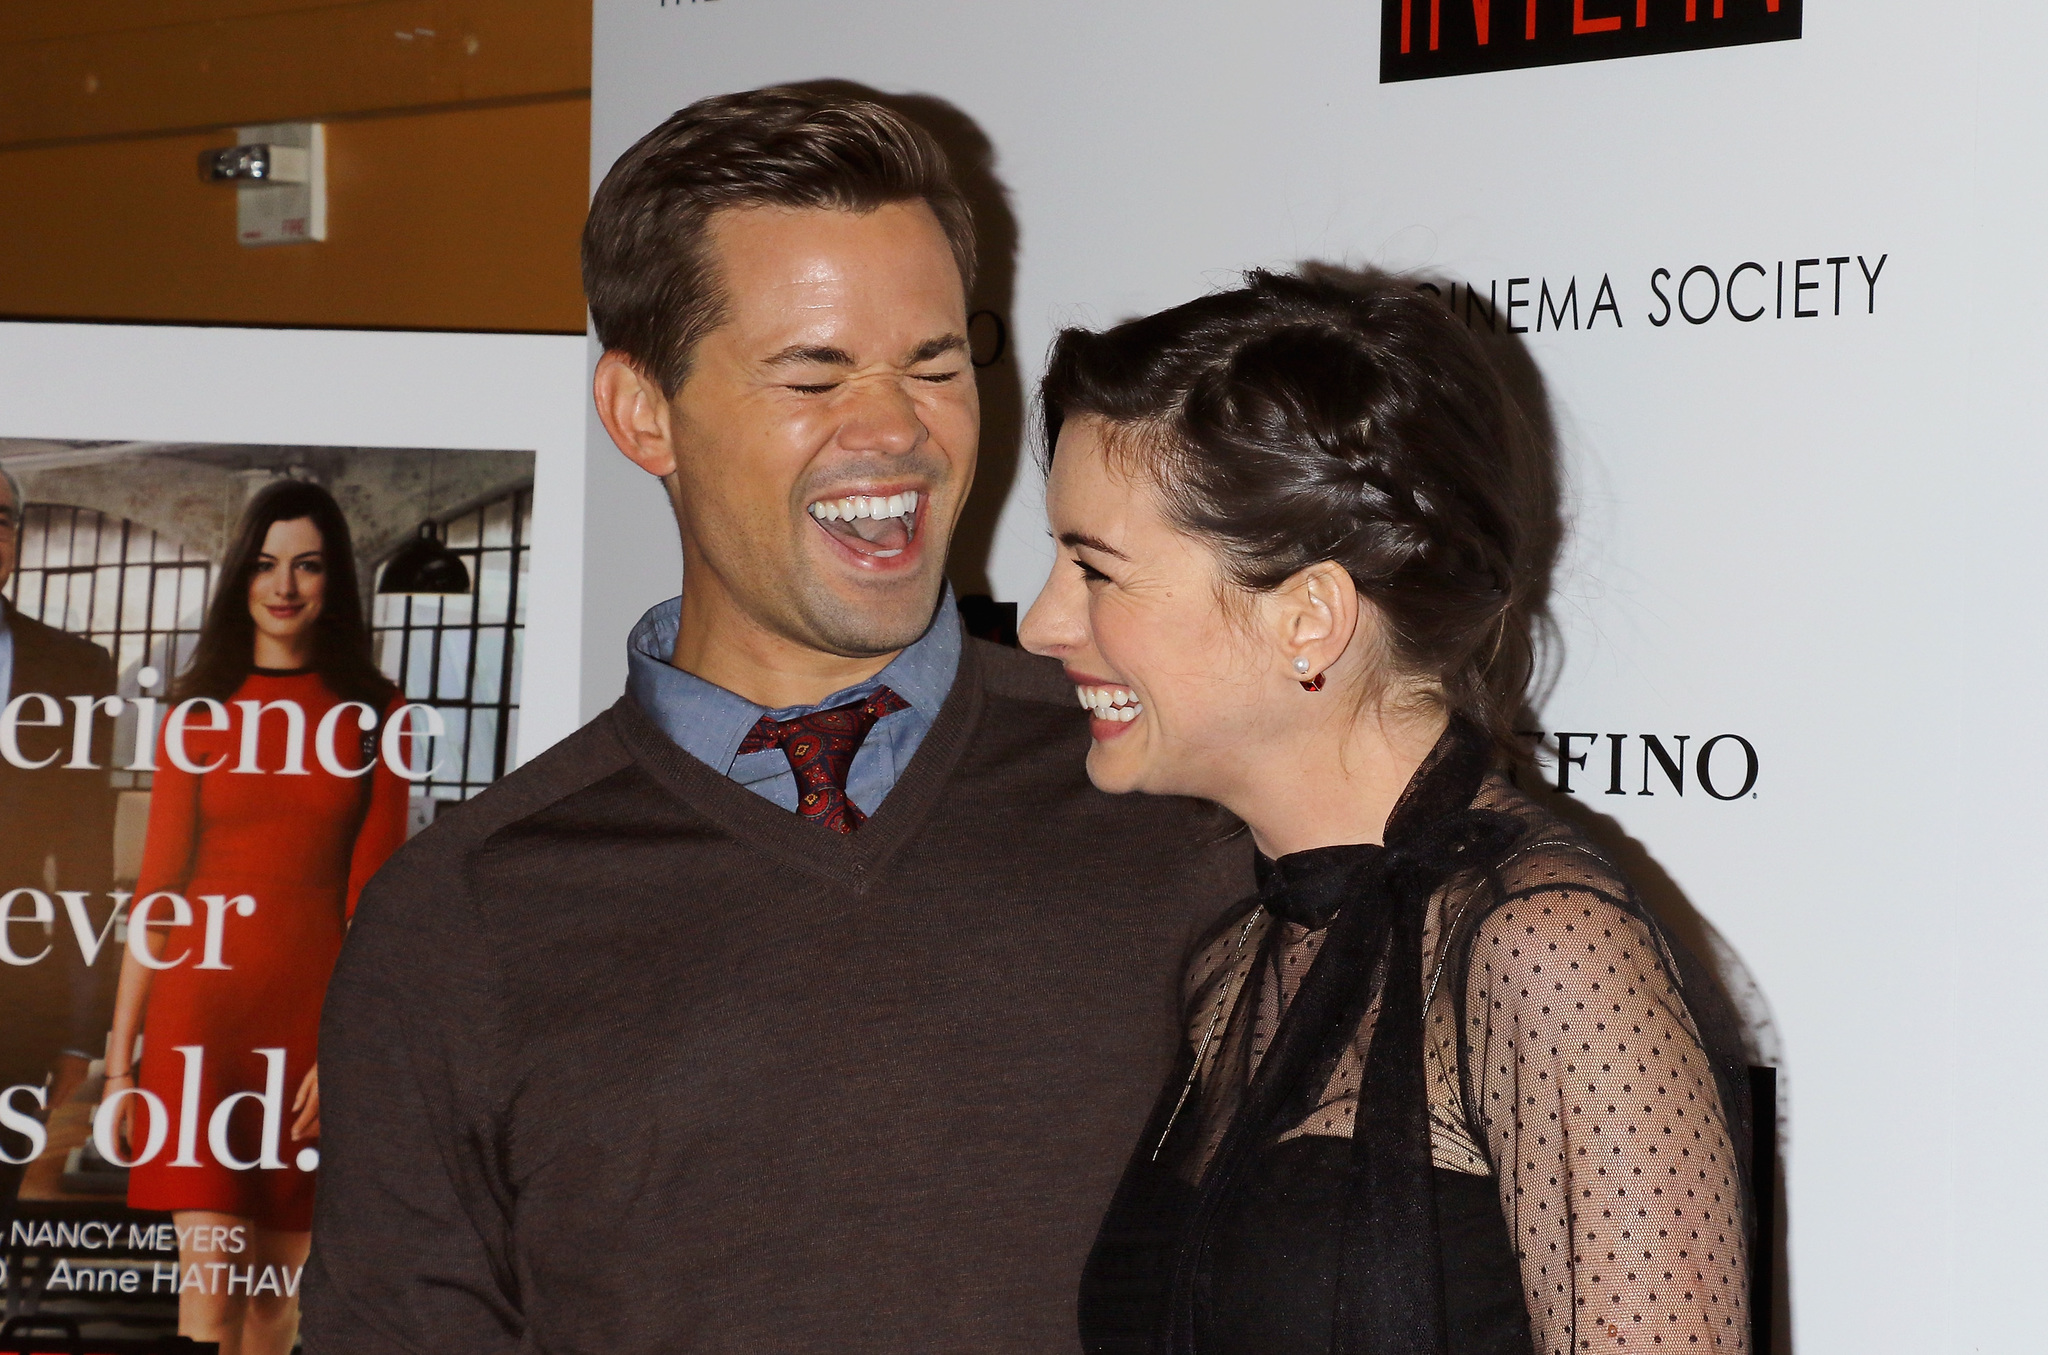 Anne Hathaway and Andrew Rannells